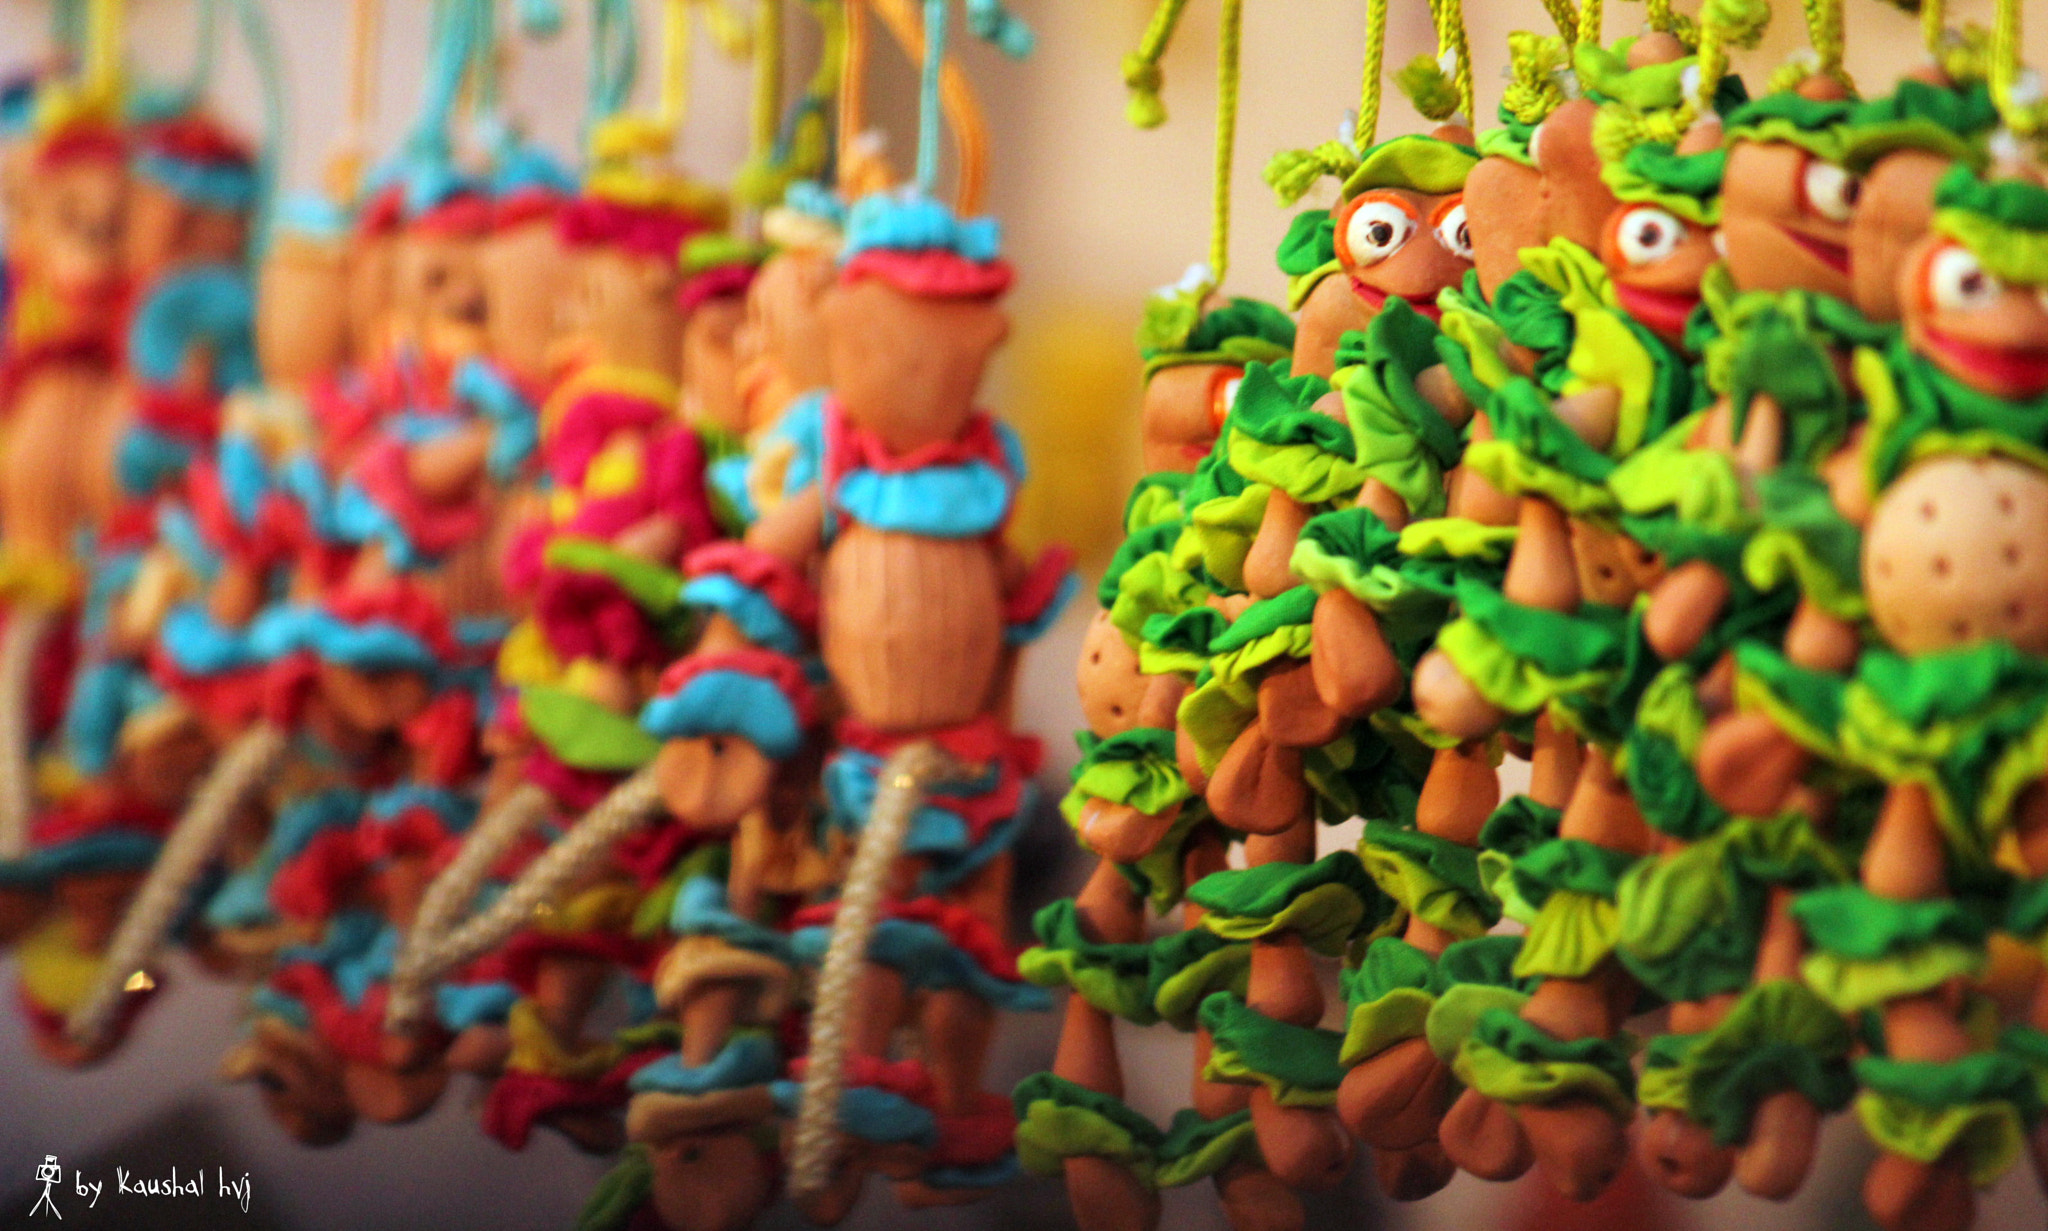 Photograph puppets by Kaushal hvj on 500px